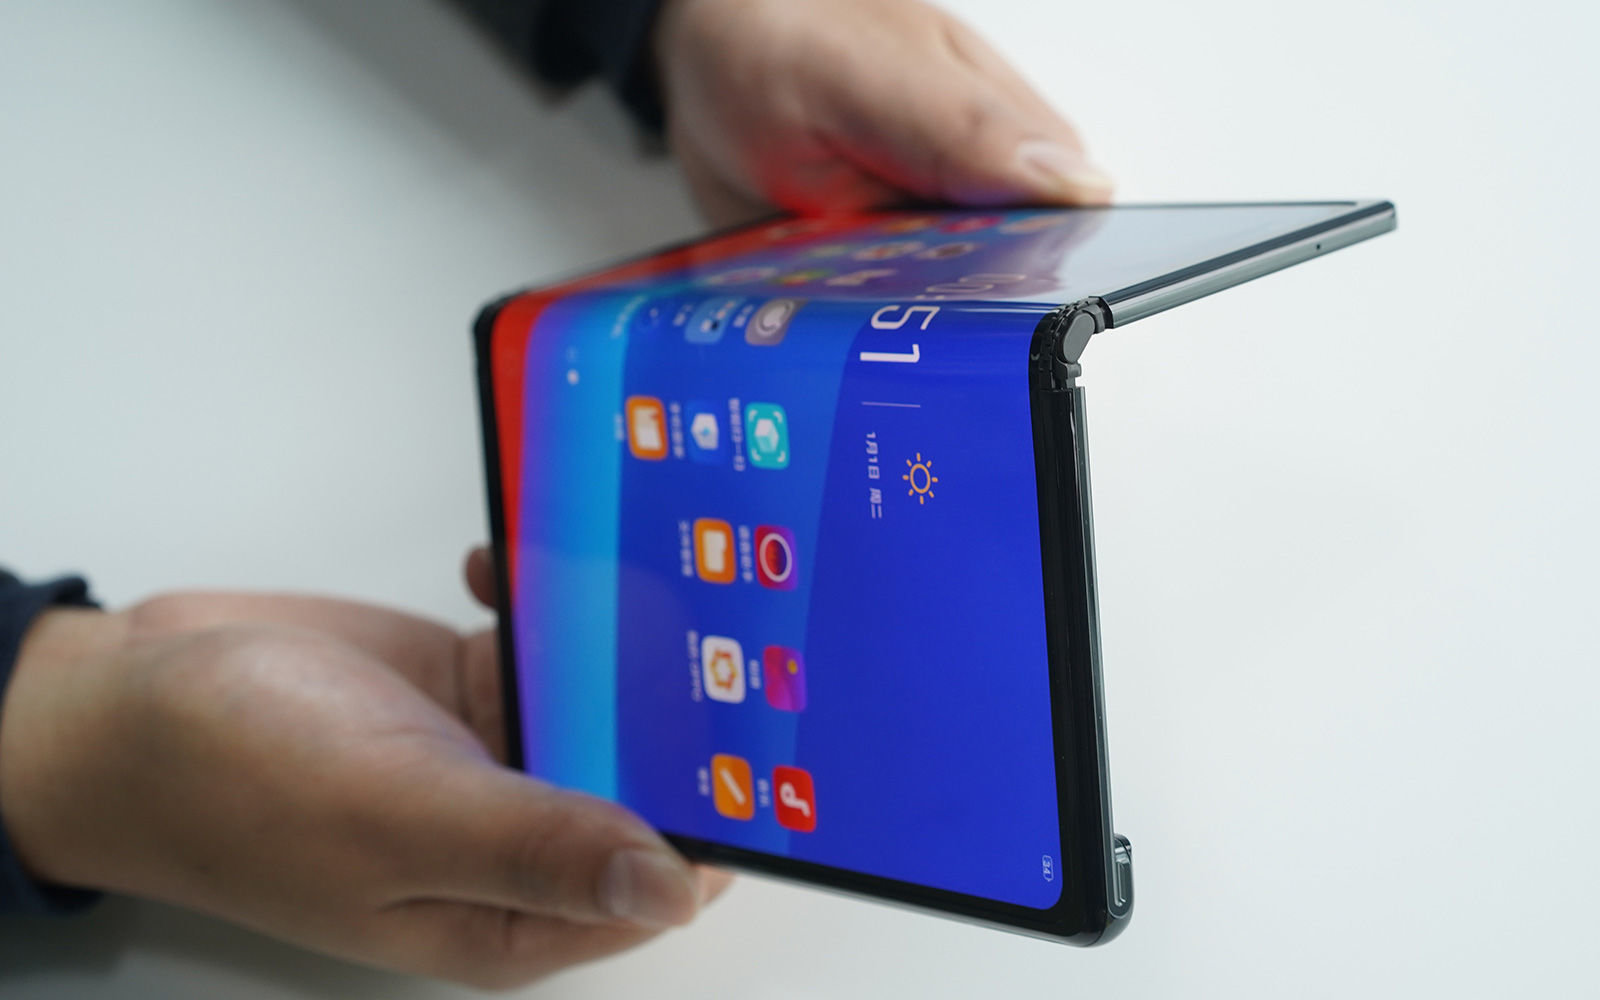 Galaxy Fold teardown lets everybody take a look at its complex design